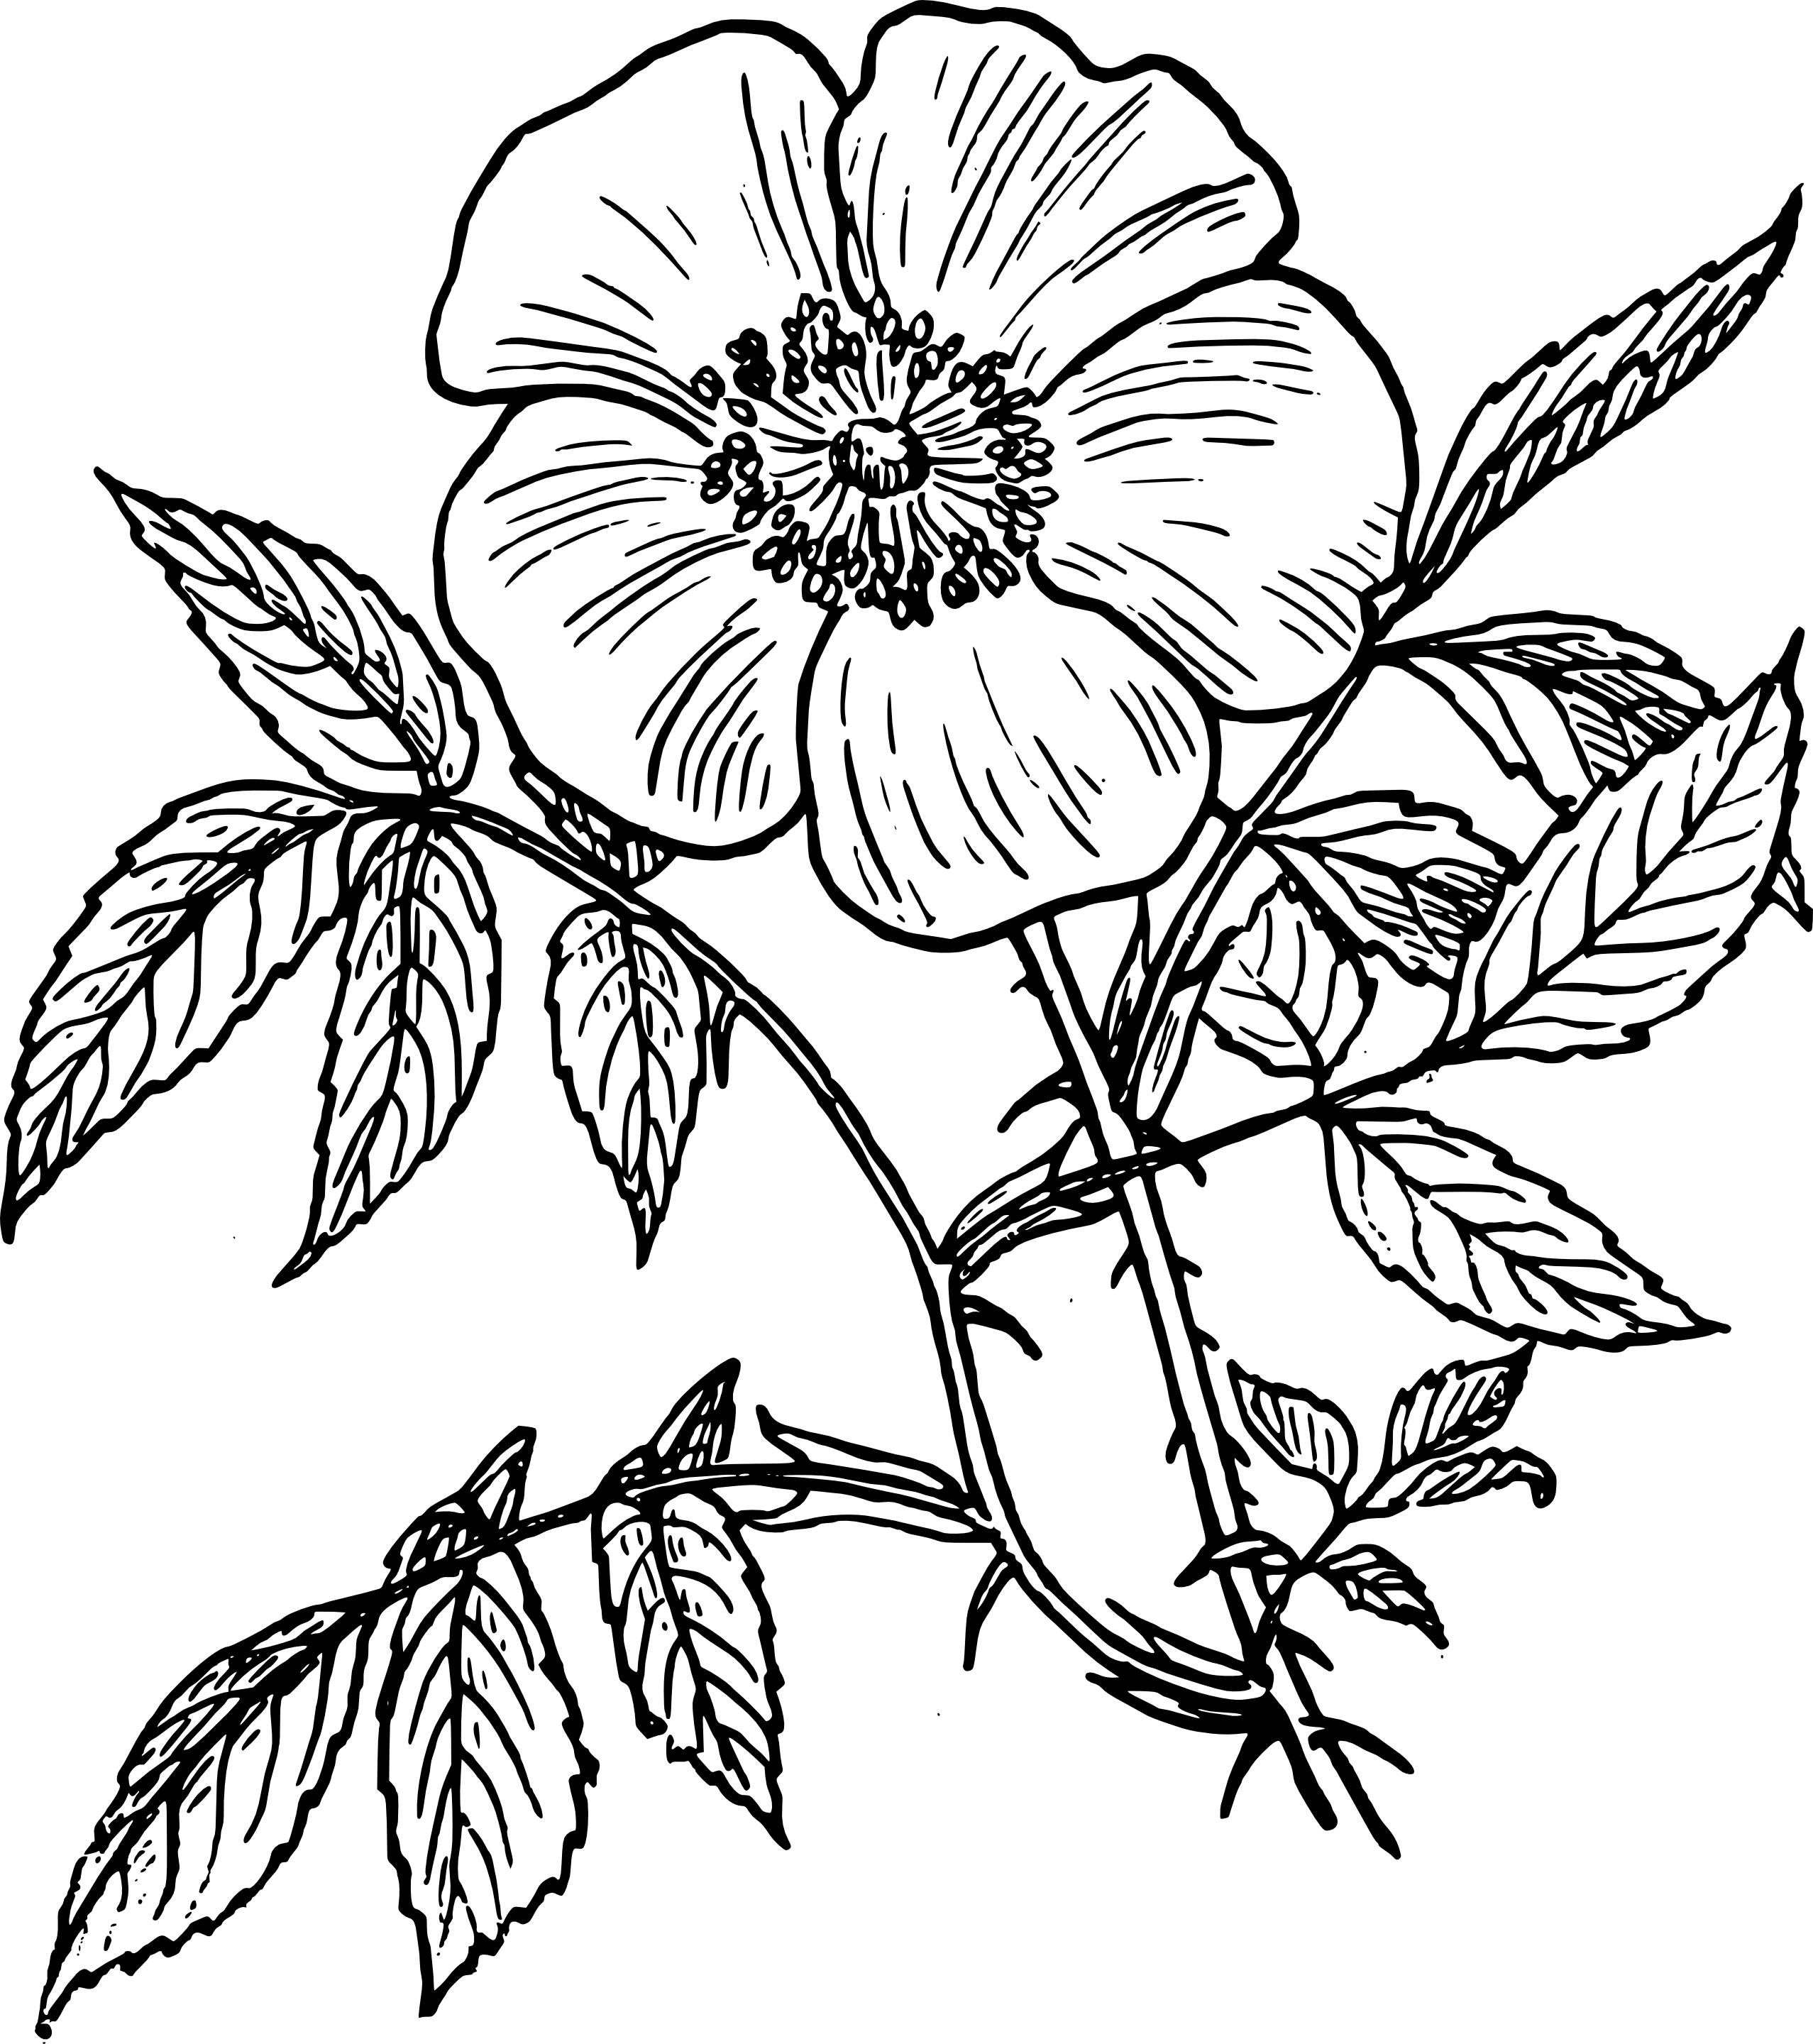 Line Drawing Of Rose Flower : Rose line drawing clipart best